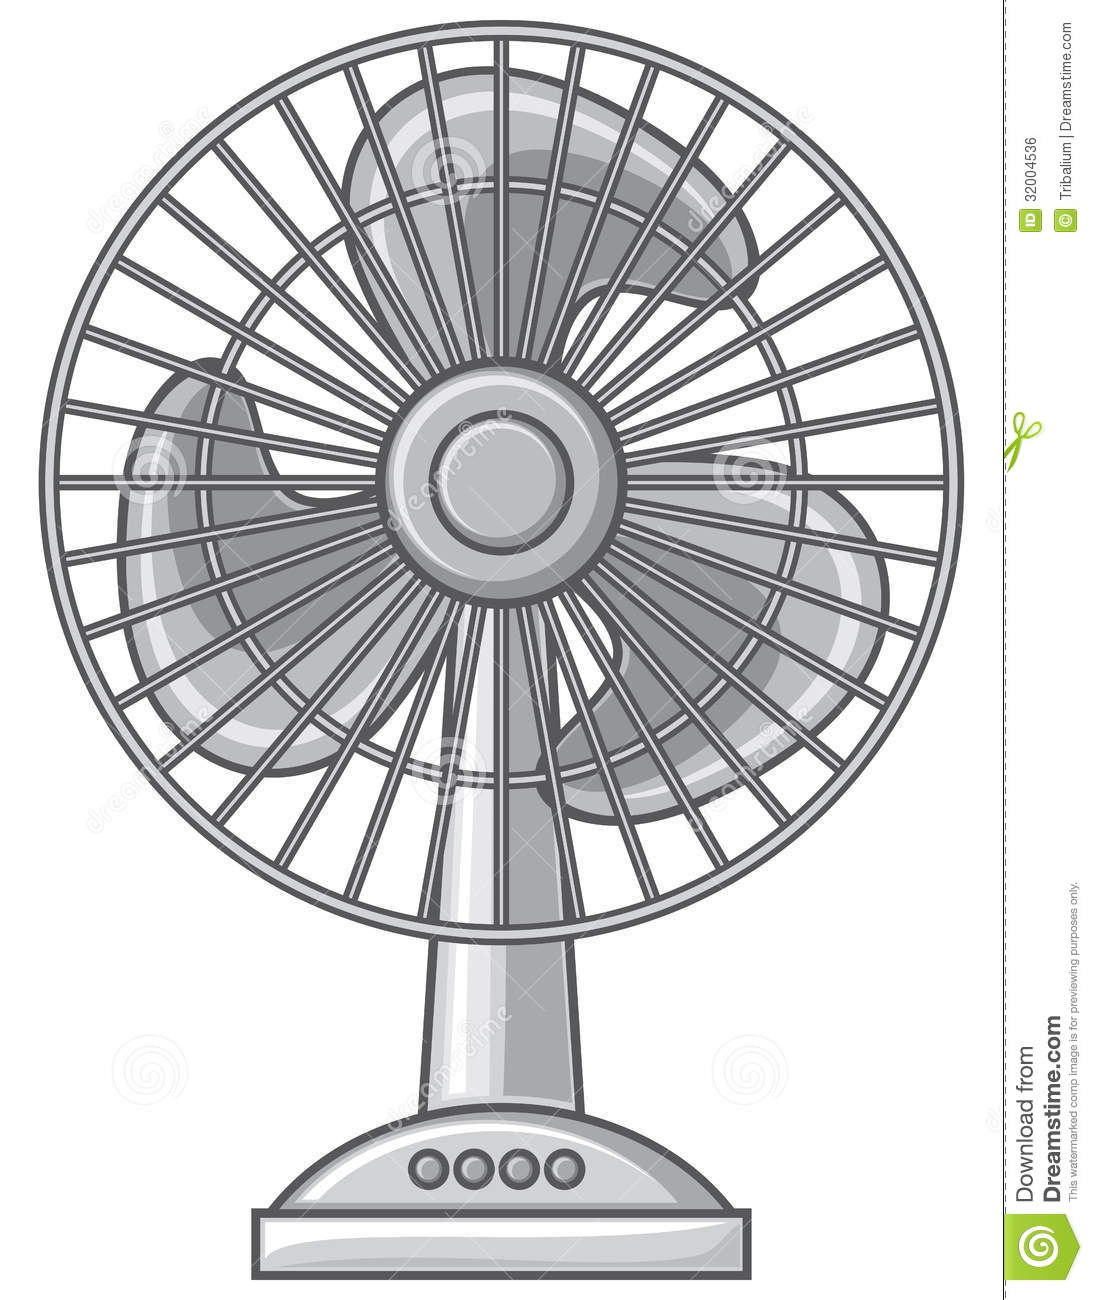 People Using Electric Fan : Table fan royalty free stock image